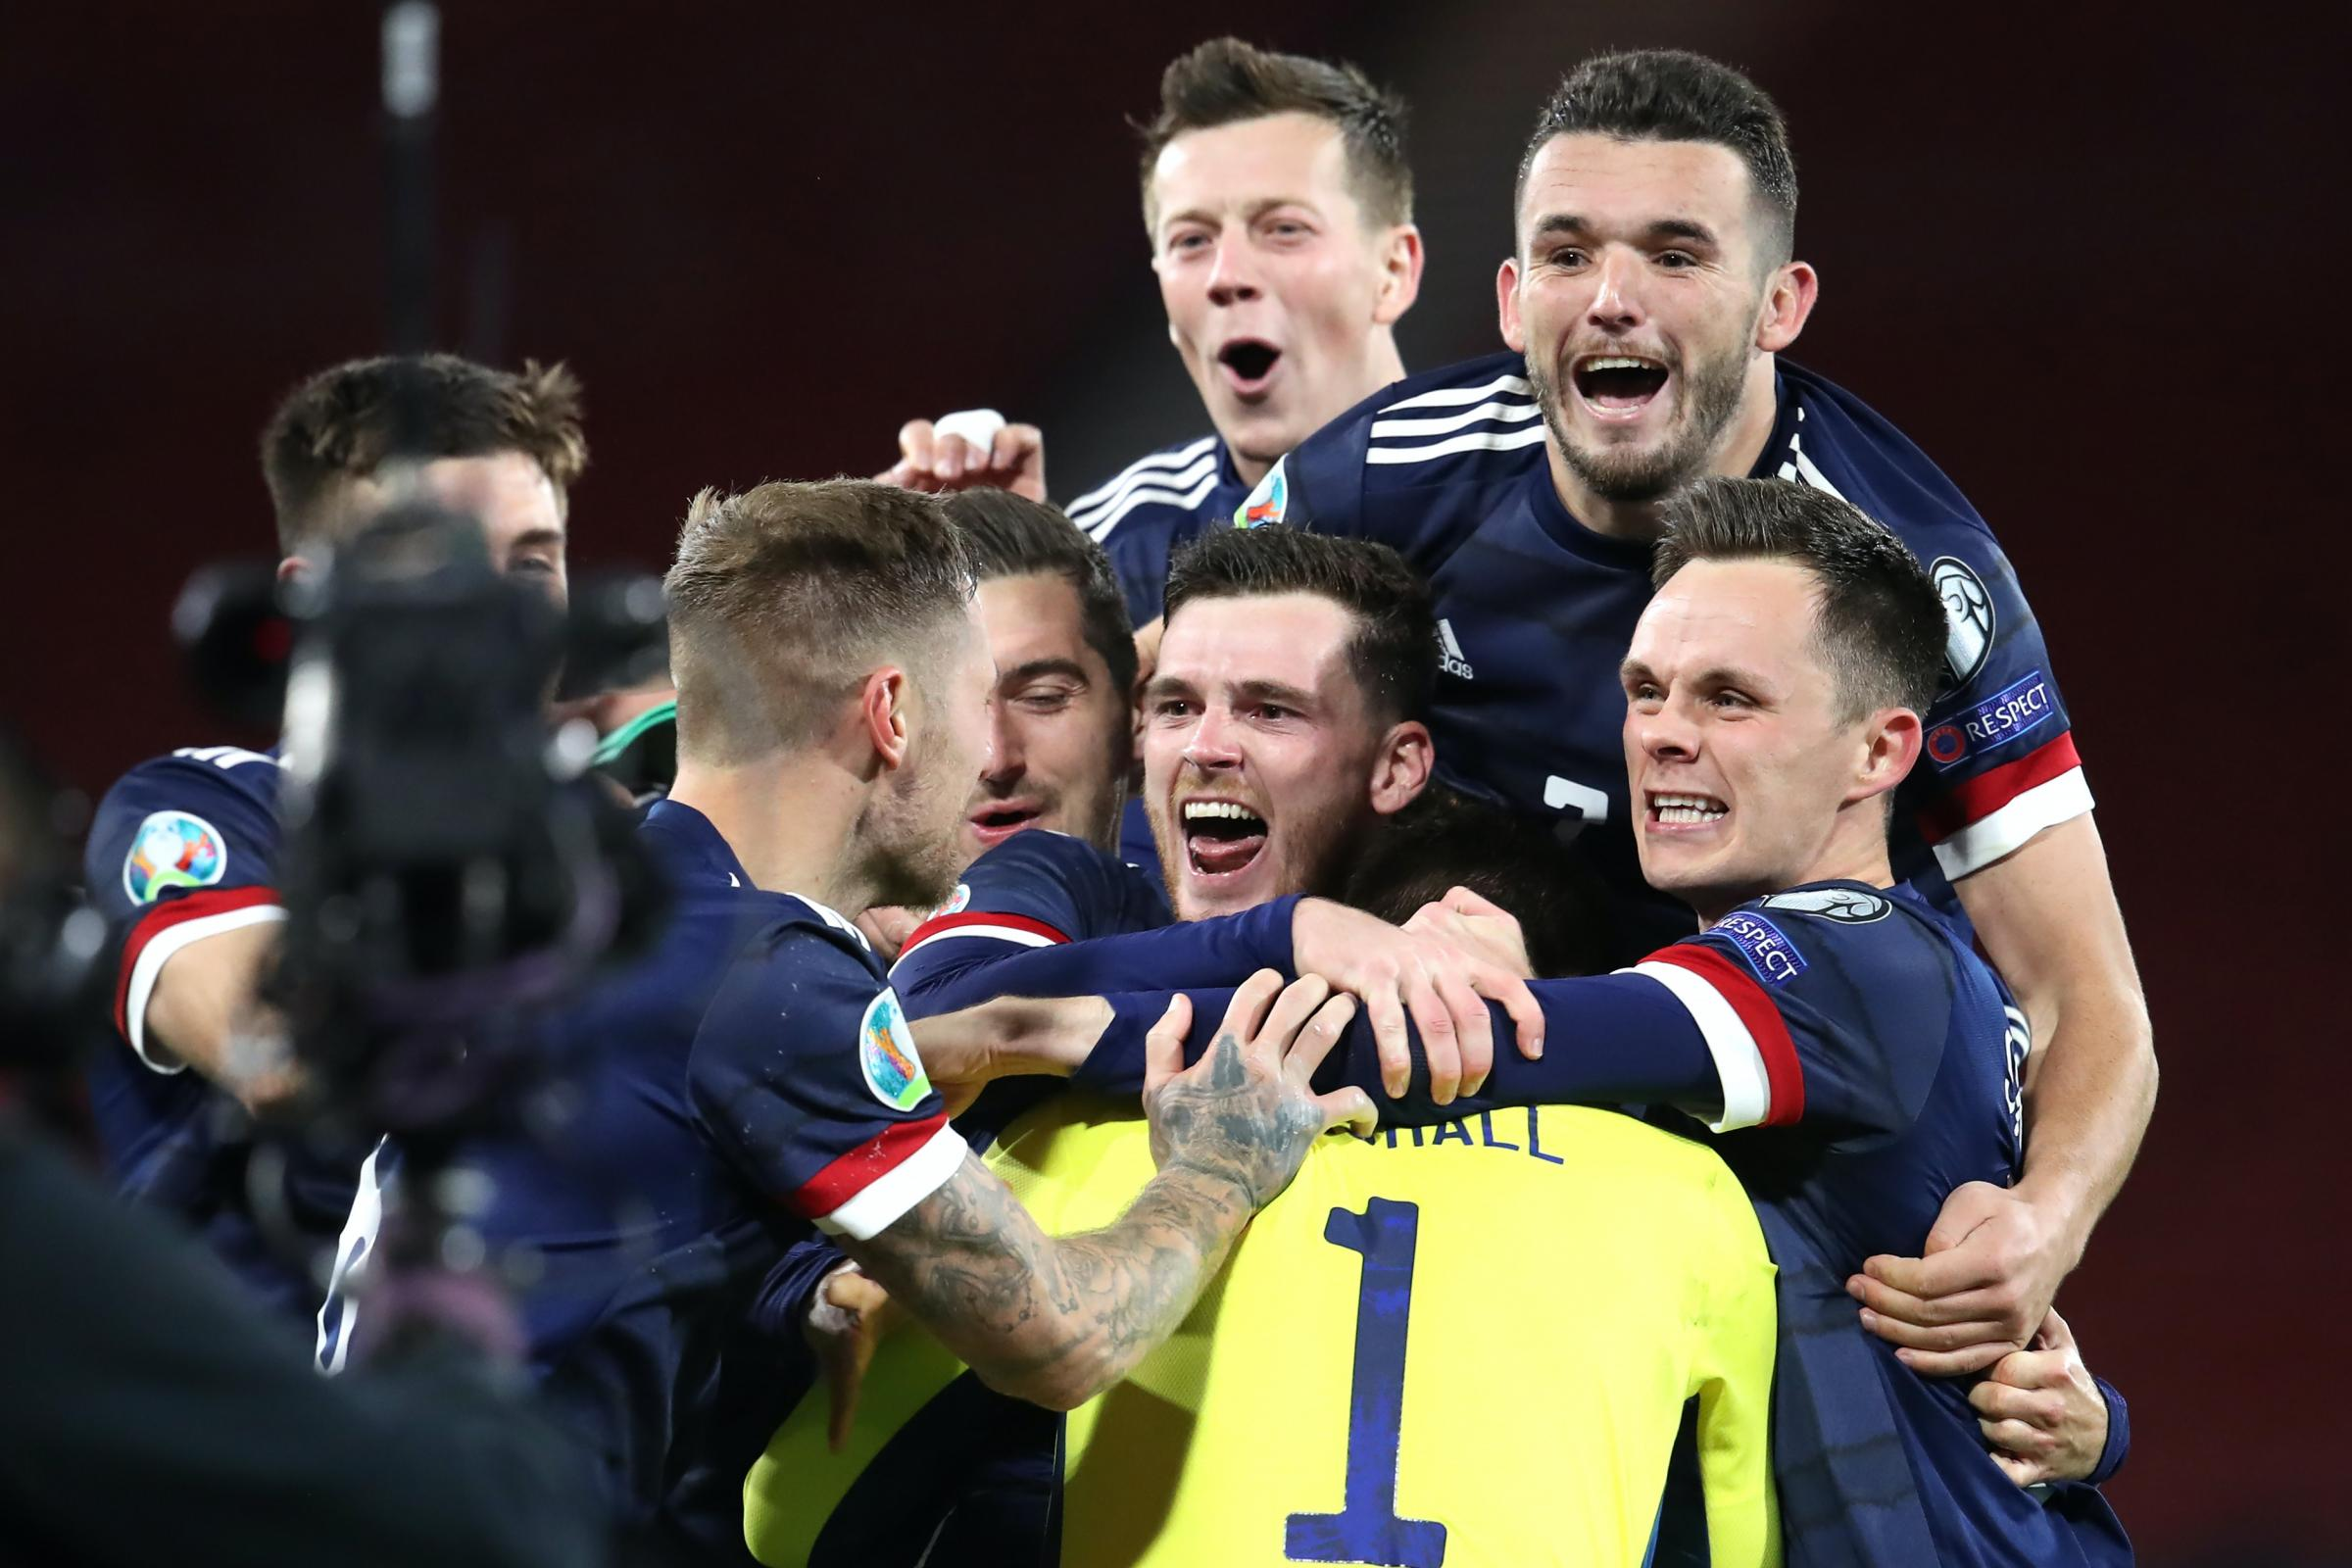 Scotland triumph on penalties to progress in Euro 2020 play-offs | East  Lothian Courier